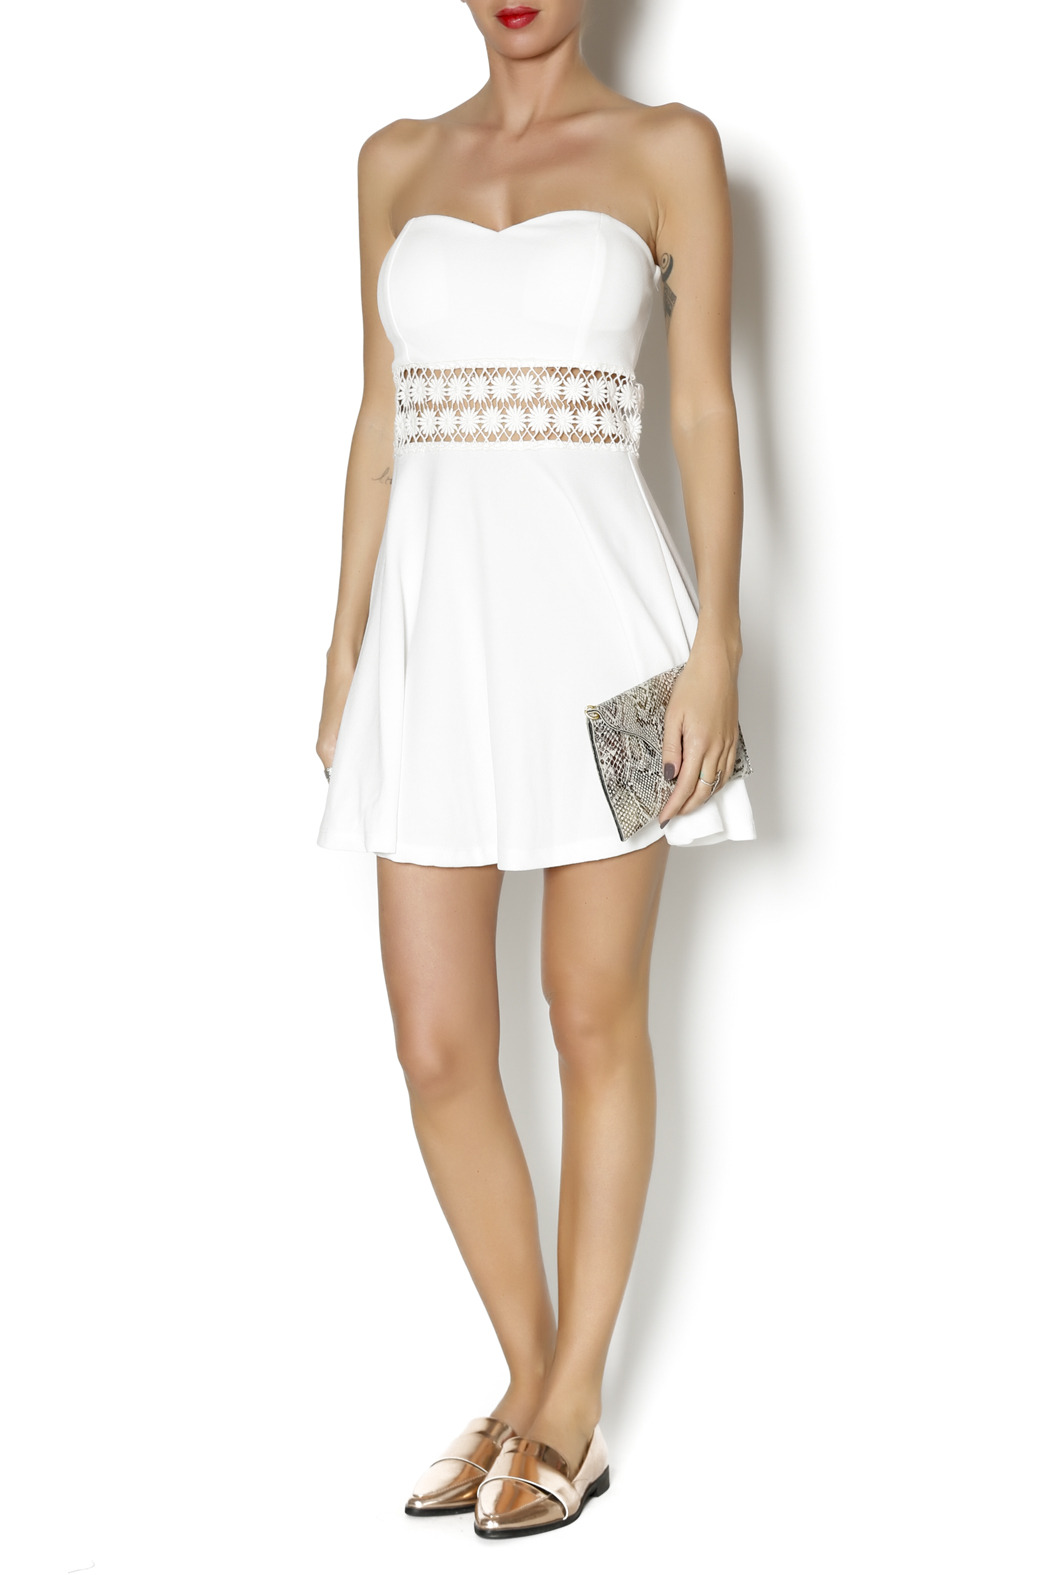 Coveted Clothing Strapless Emily Dress - Front Full Image